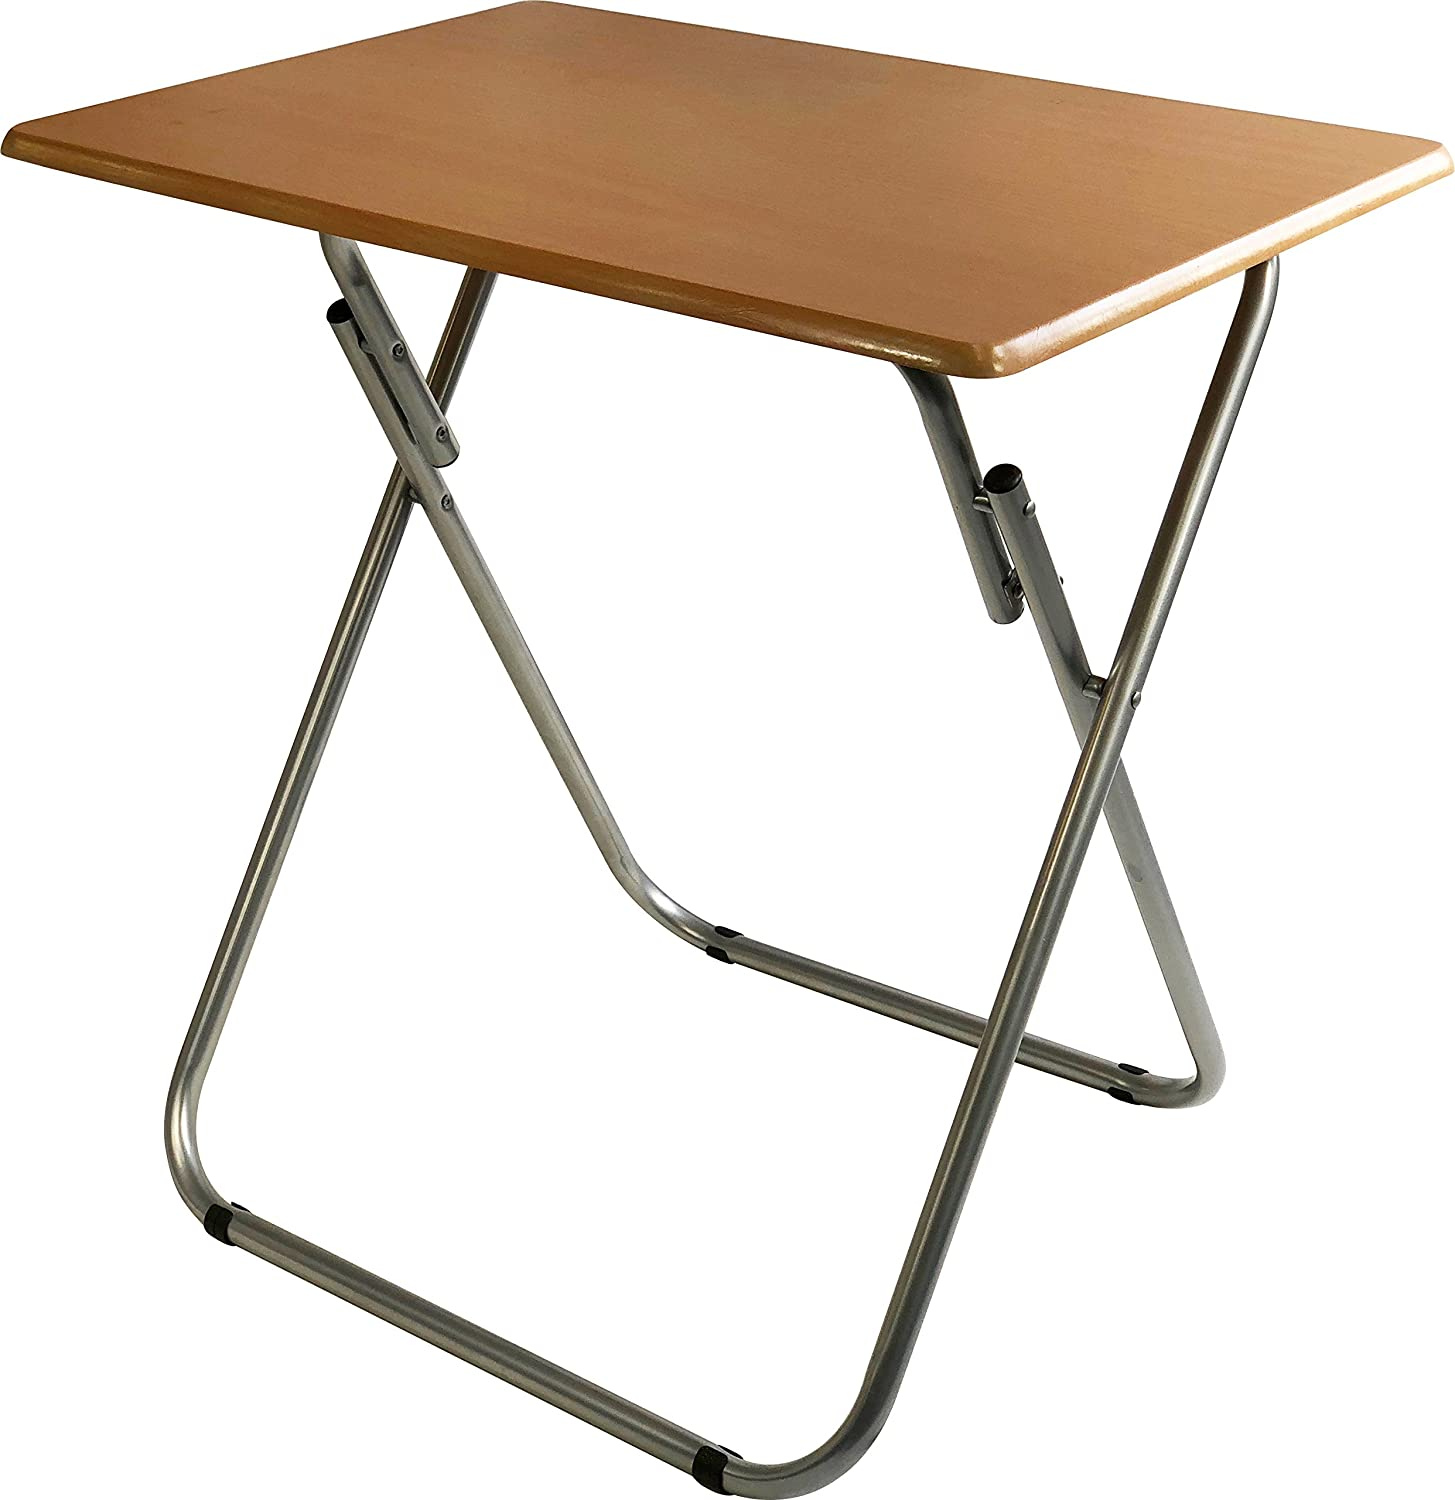 Wee's Beyond 1305 Over-Sized TV Tray Folding Table, Beech Wee's Beyond